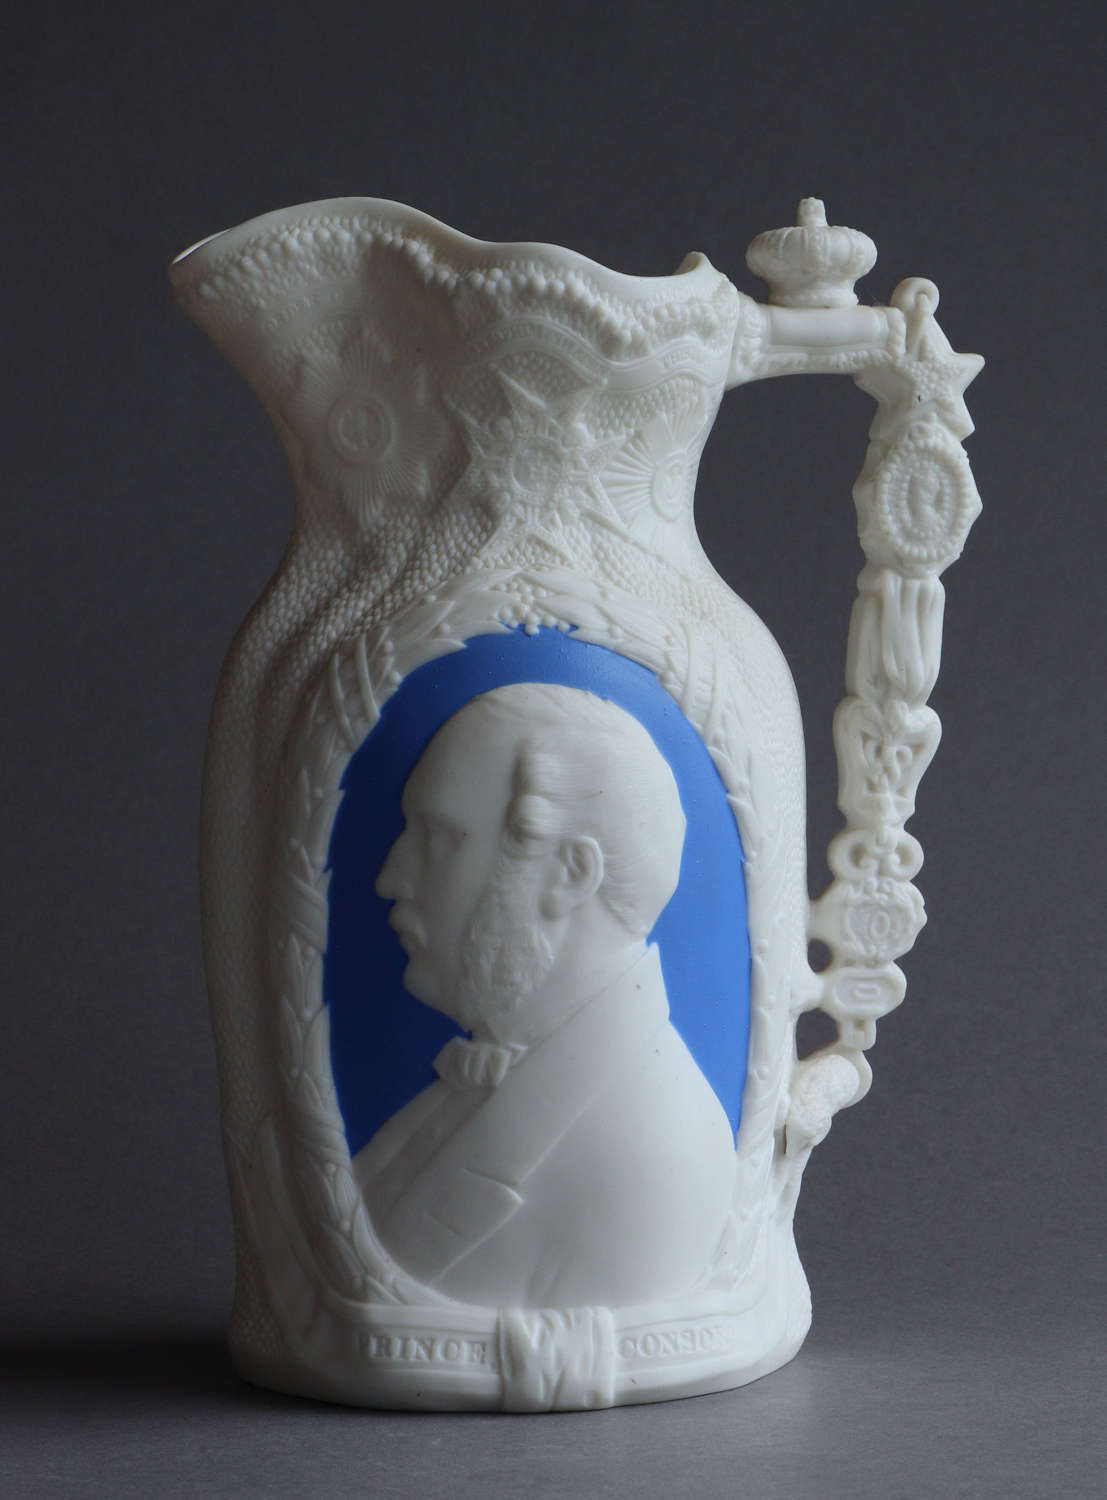 A Parian jug by OHE Co for the life of Prince Albert